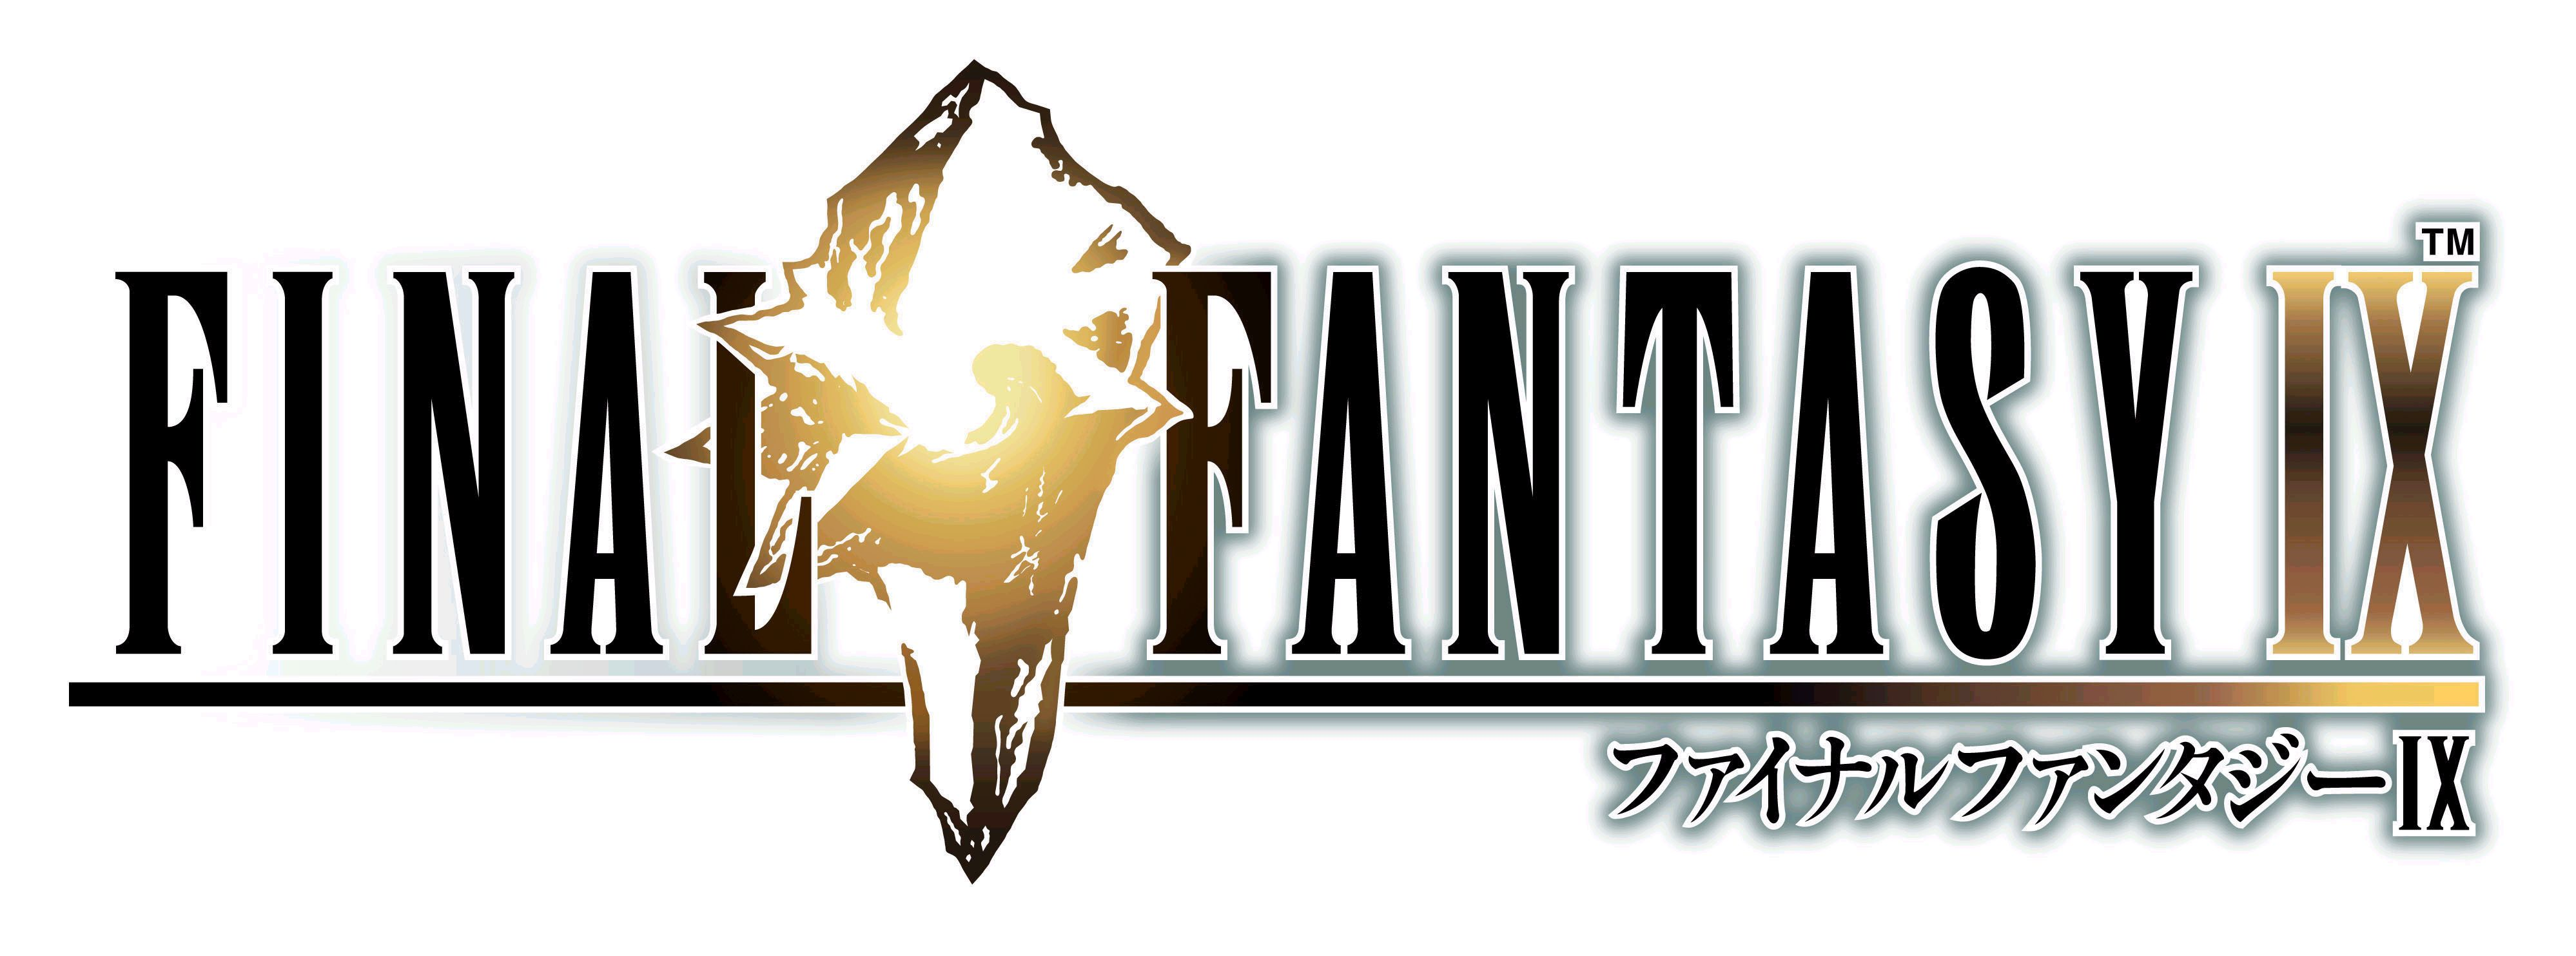 http://exp4all.net/wp-content/uploads/2016/01/09._final_fantasy_ix.jpg